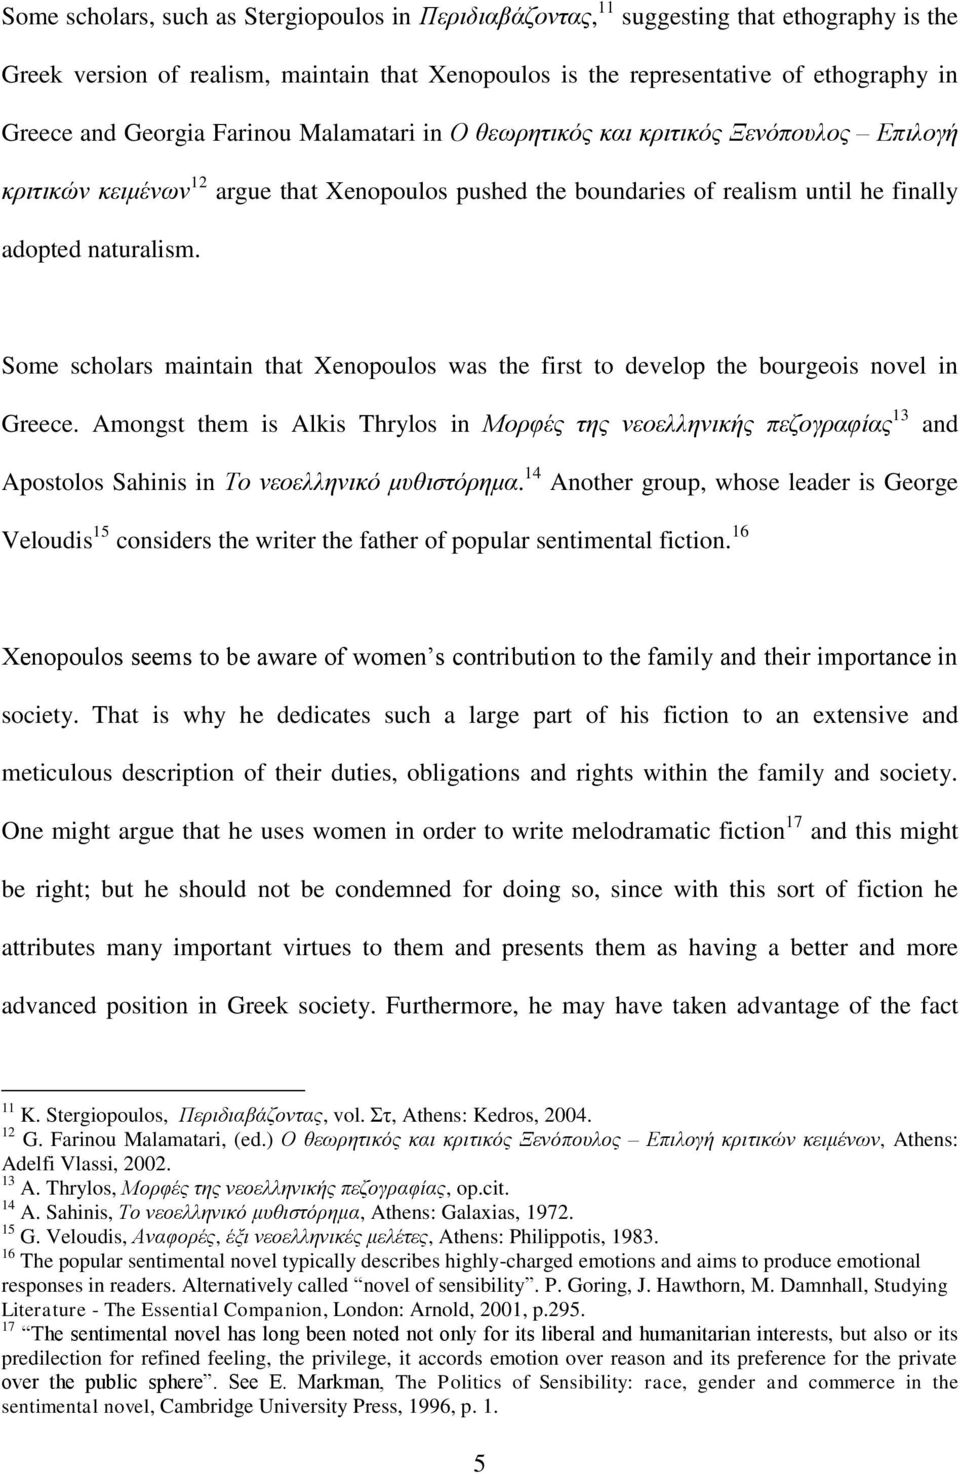 Some scholars maintain that Xenopoulos was the first to develop the bourgeois novel in Greece.